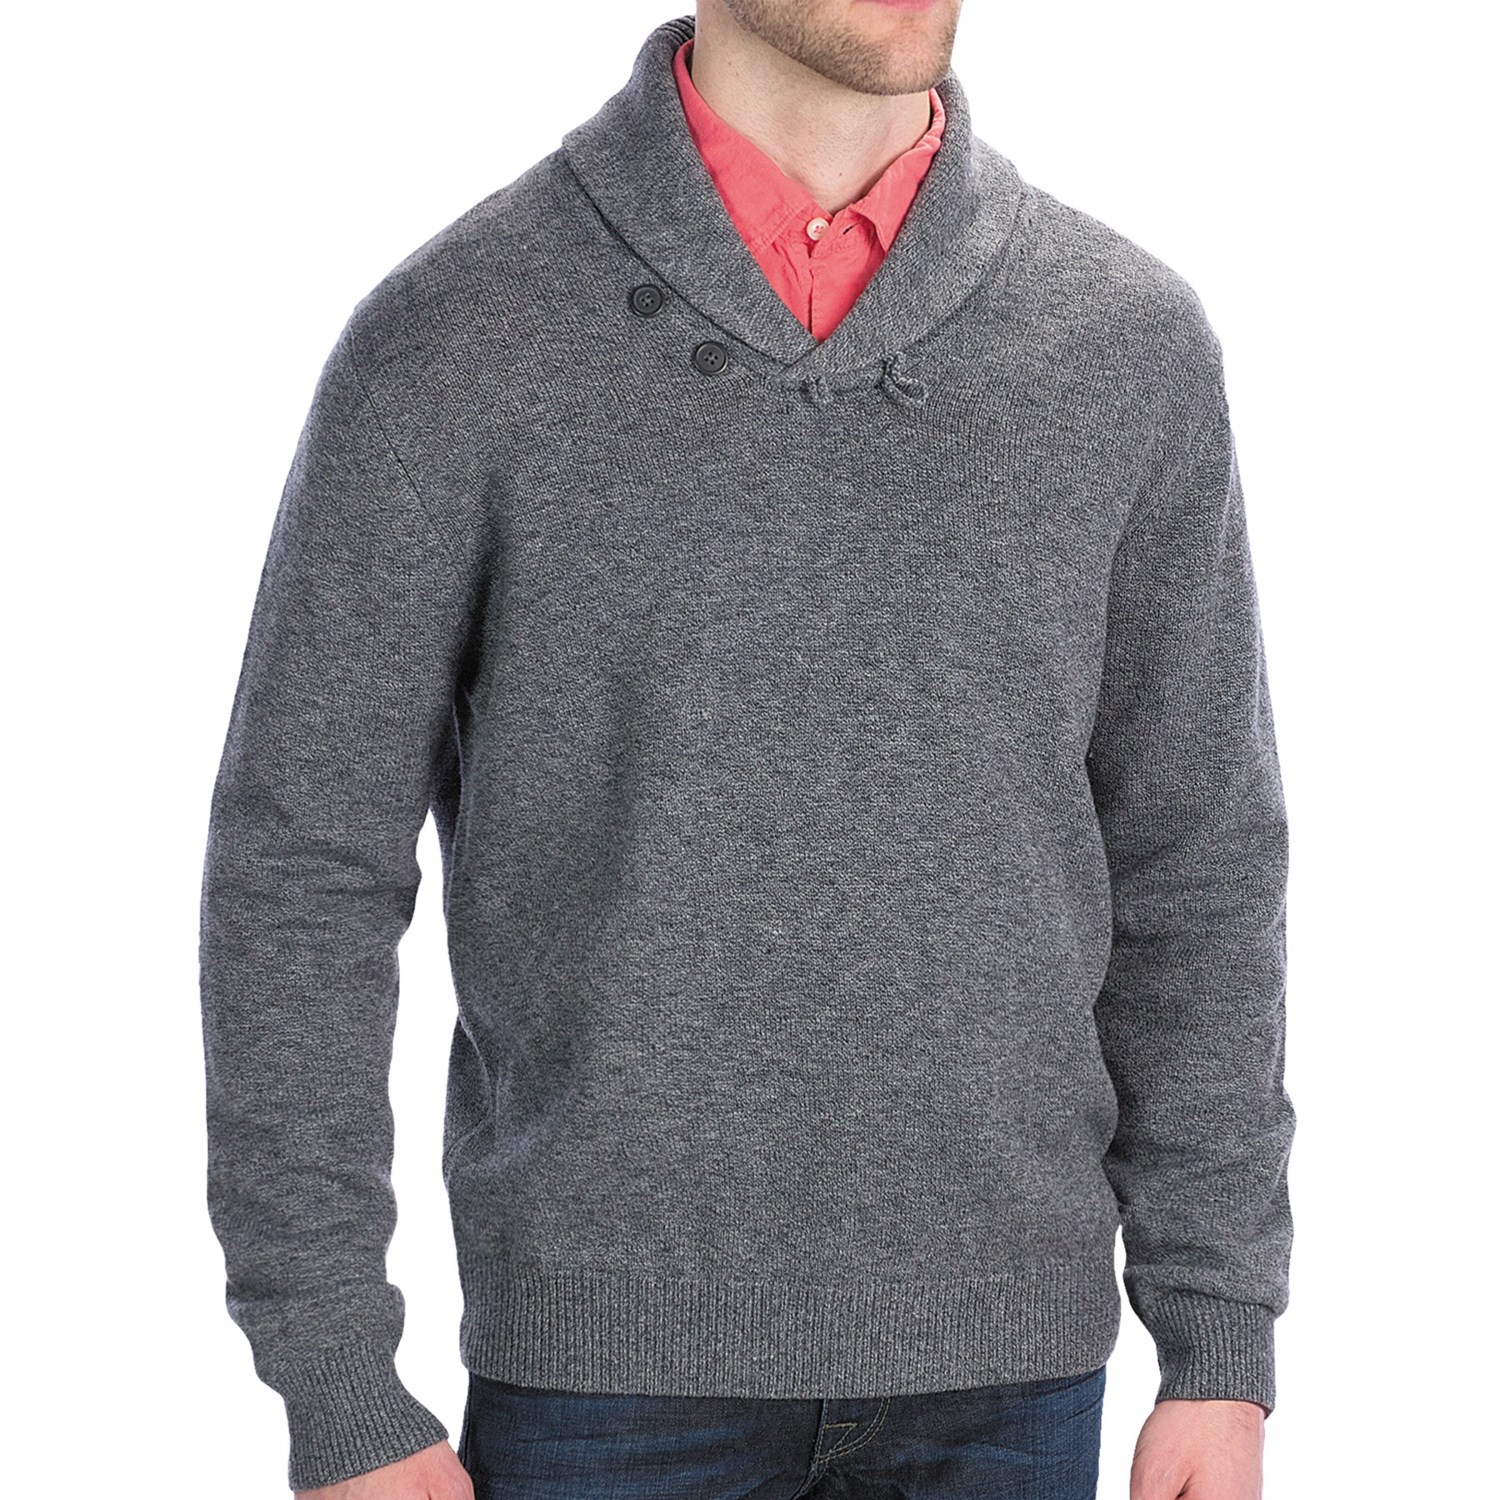 Shop for men's shawl collar sweaters & cardigans online at grounwhijwgg.cf Browse the latest Sweaters styles for men from Jos. A Bank. FREE shipping on orders over $